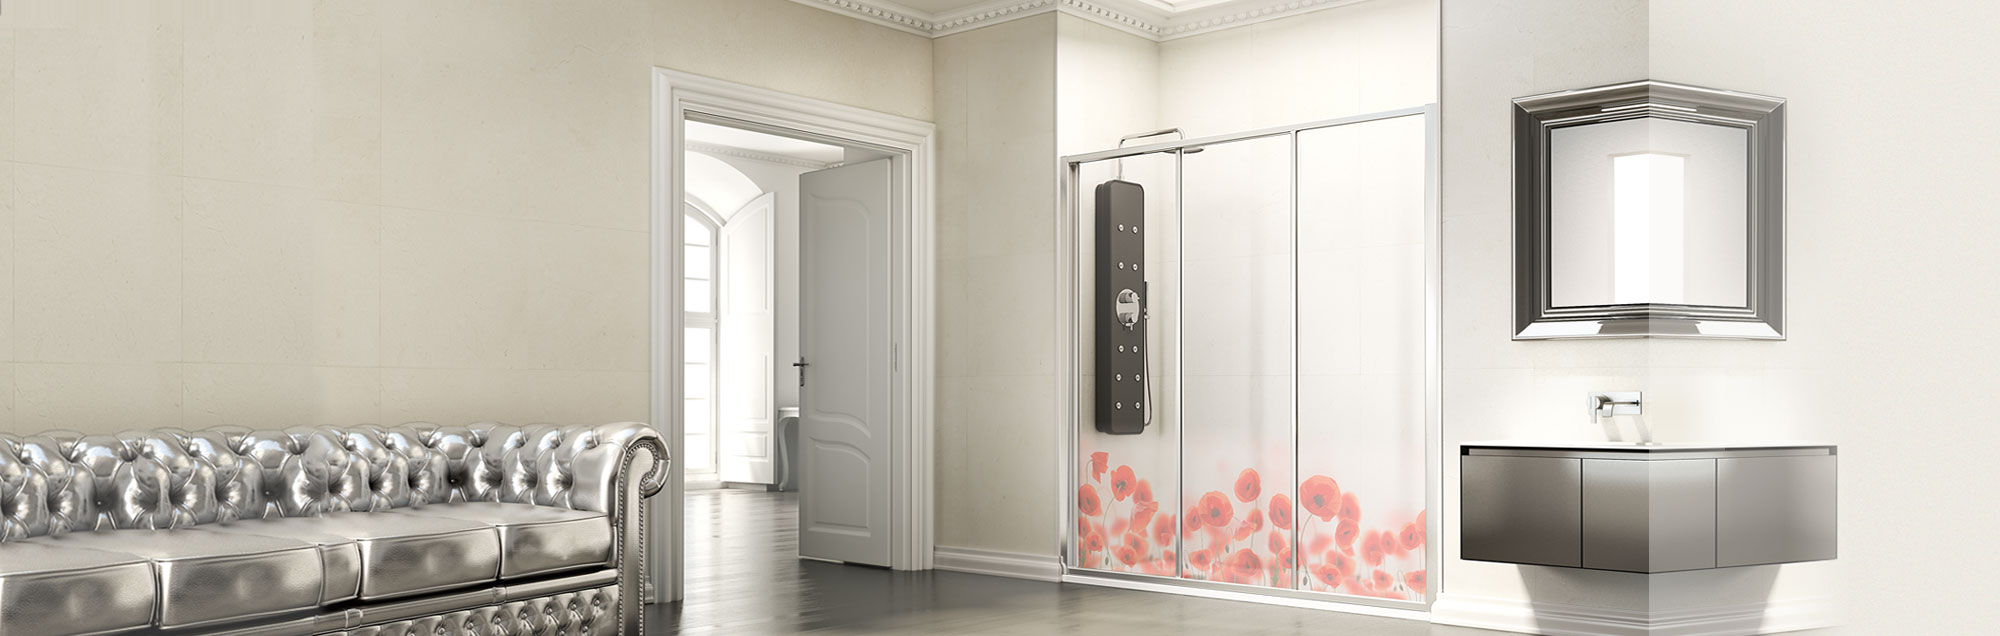 Exodux Collection sliding made to measure bathroom enclosures